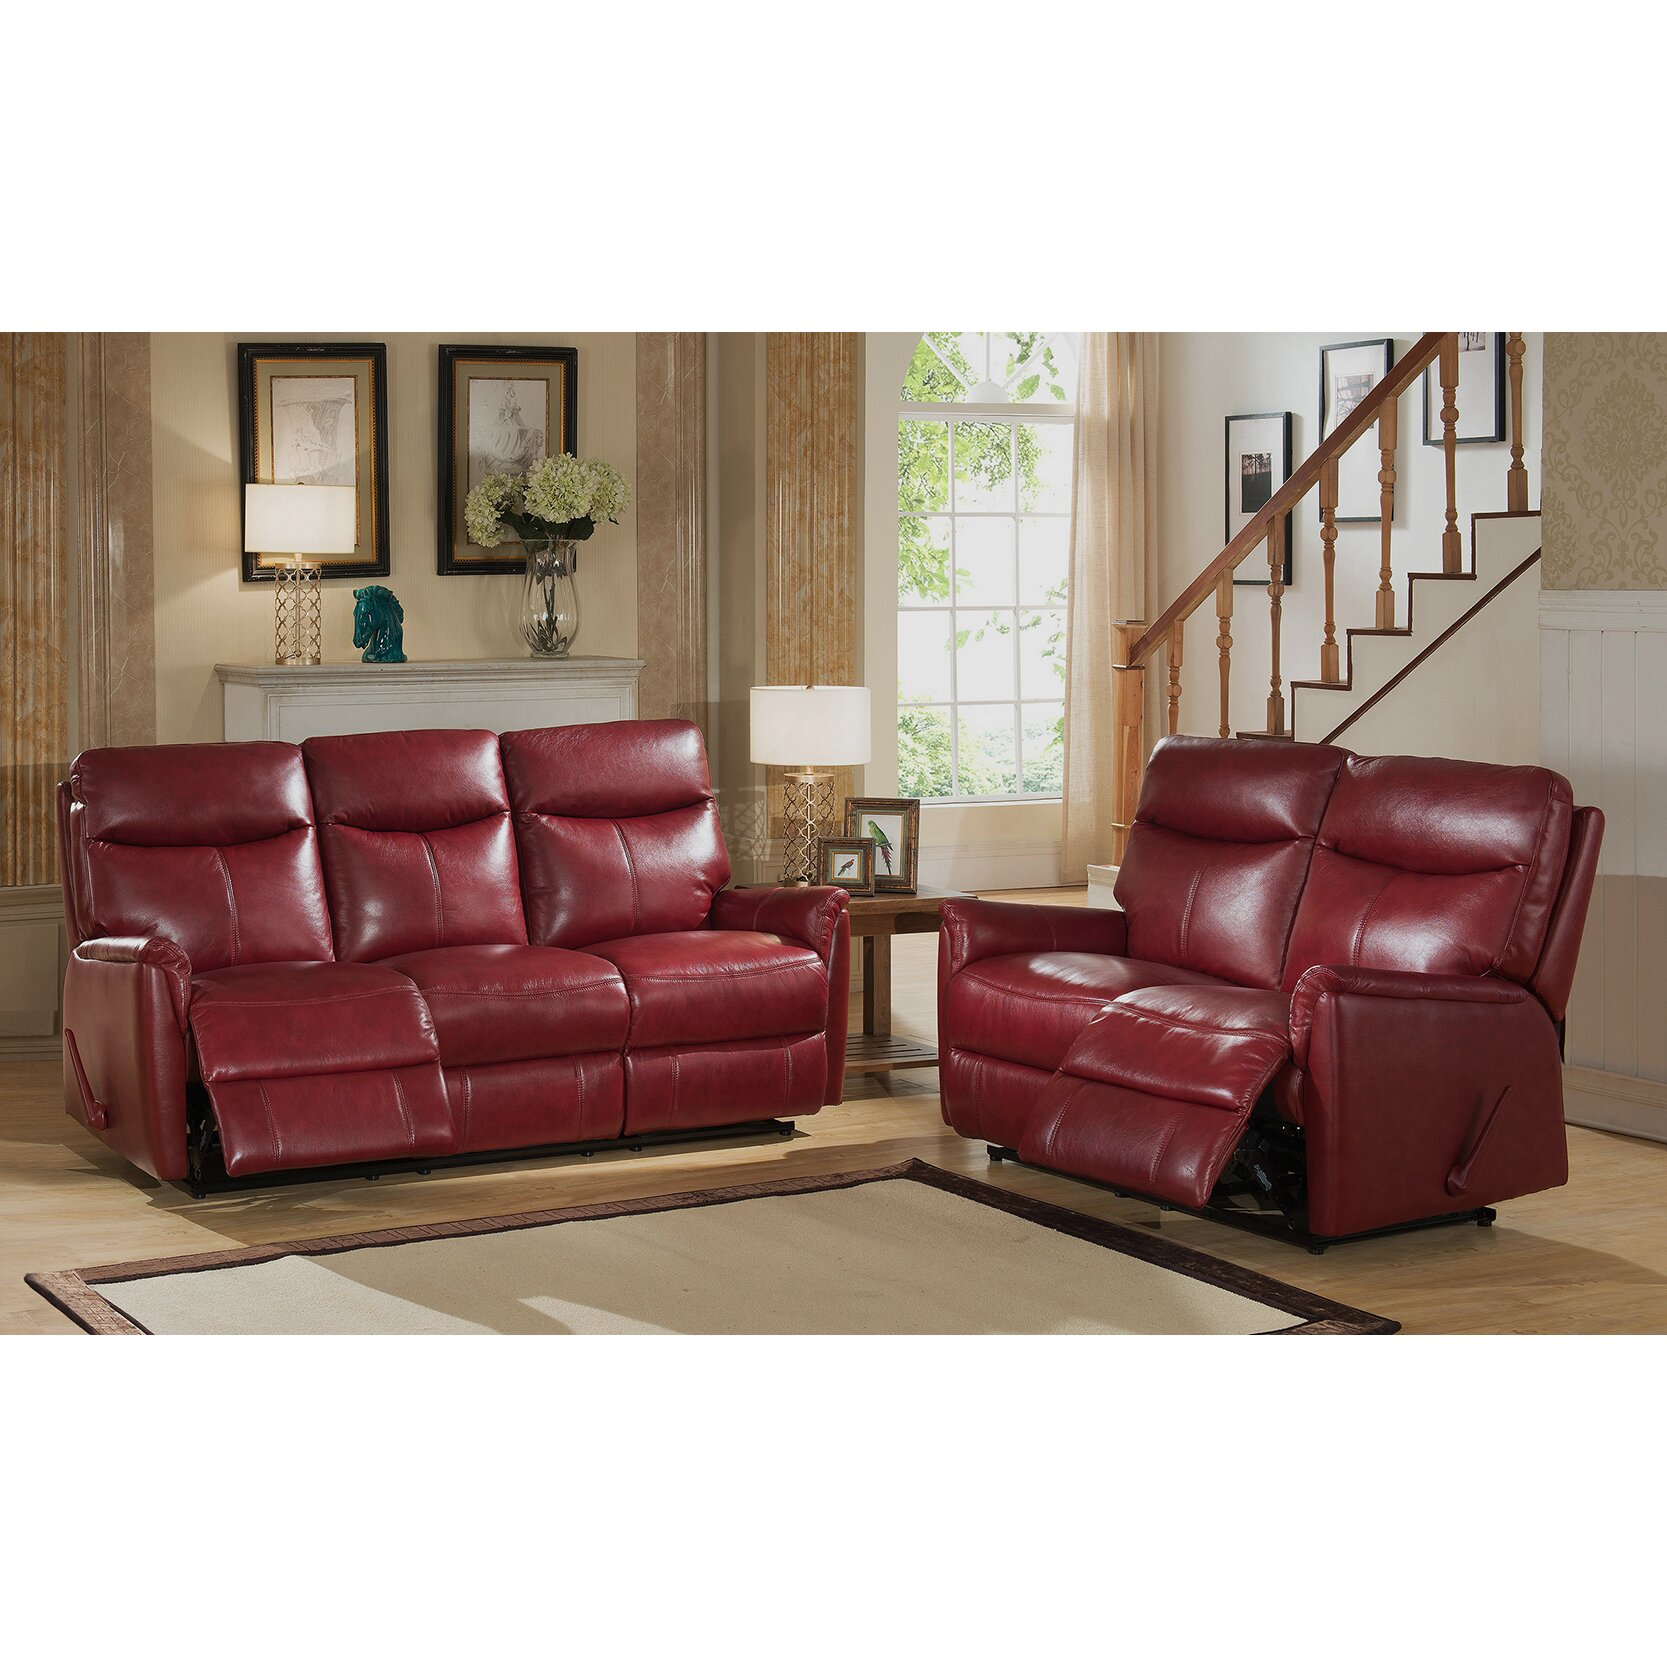 Amax Napa Top Grain Leather Lay Flat Reclining Sofa And Loveseat Set Wayfair